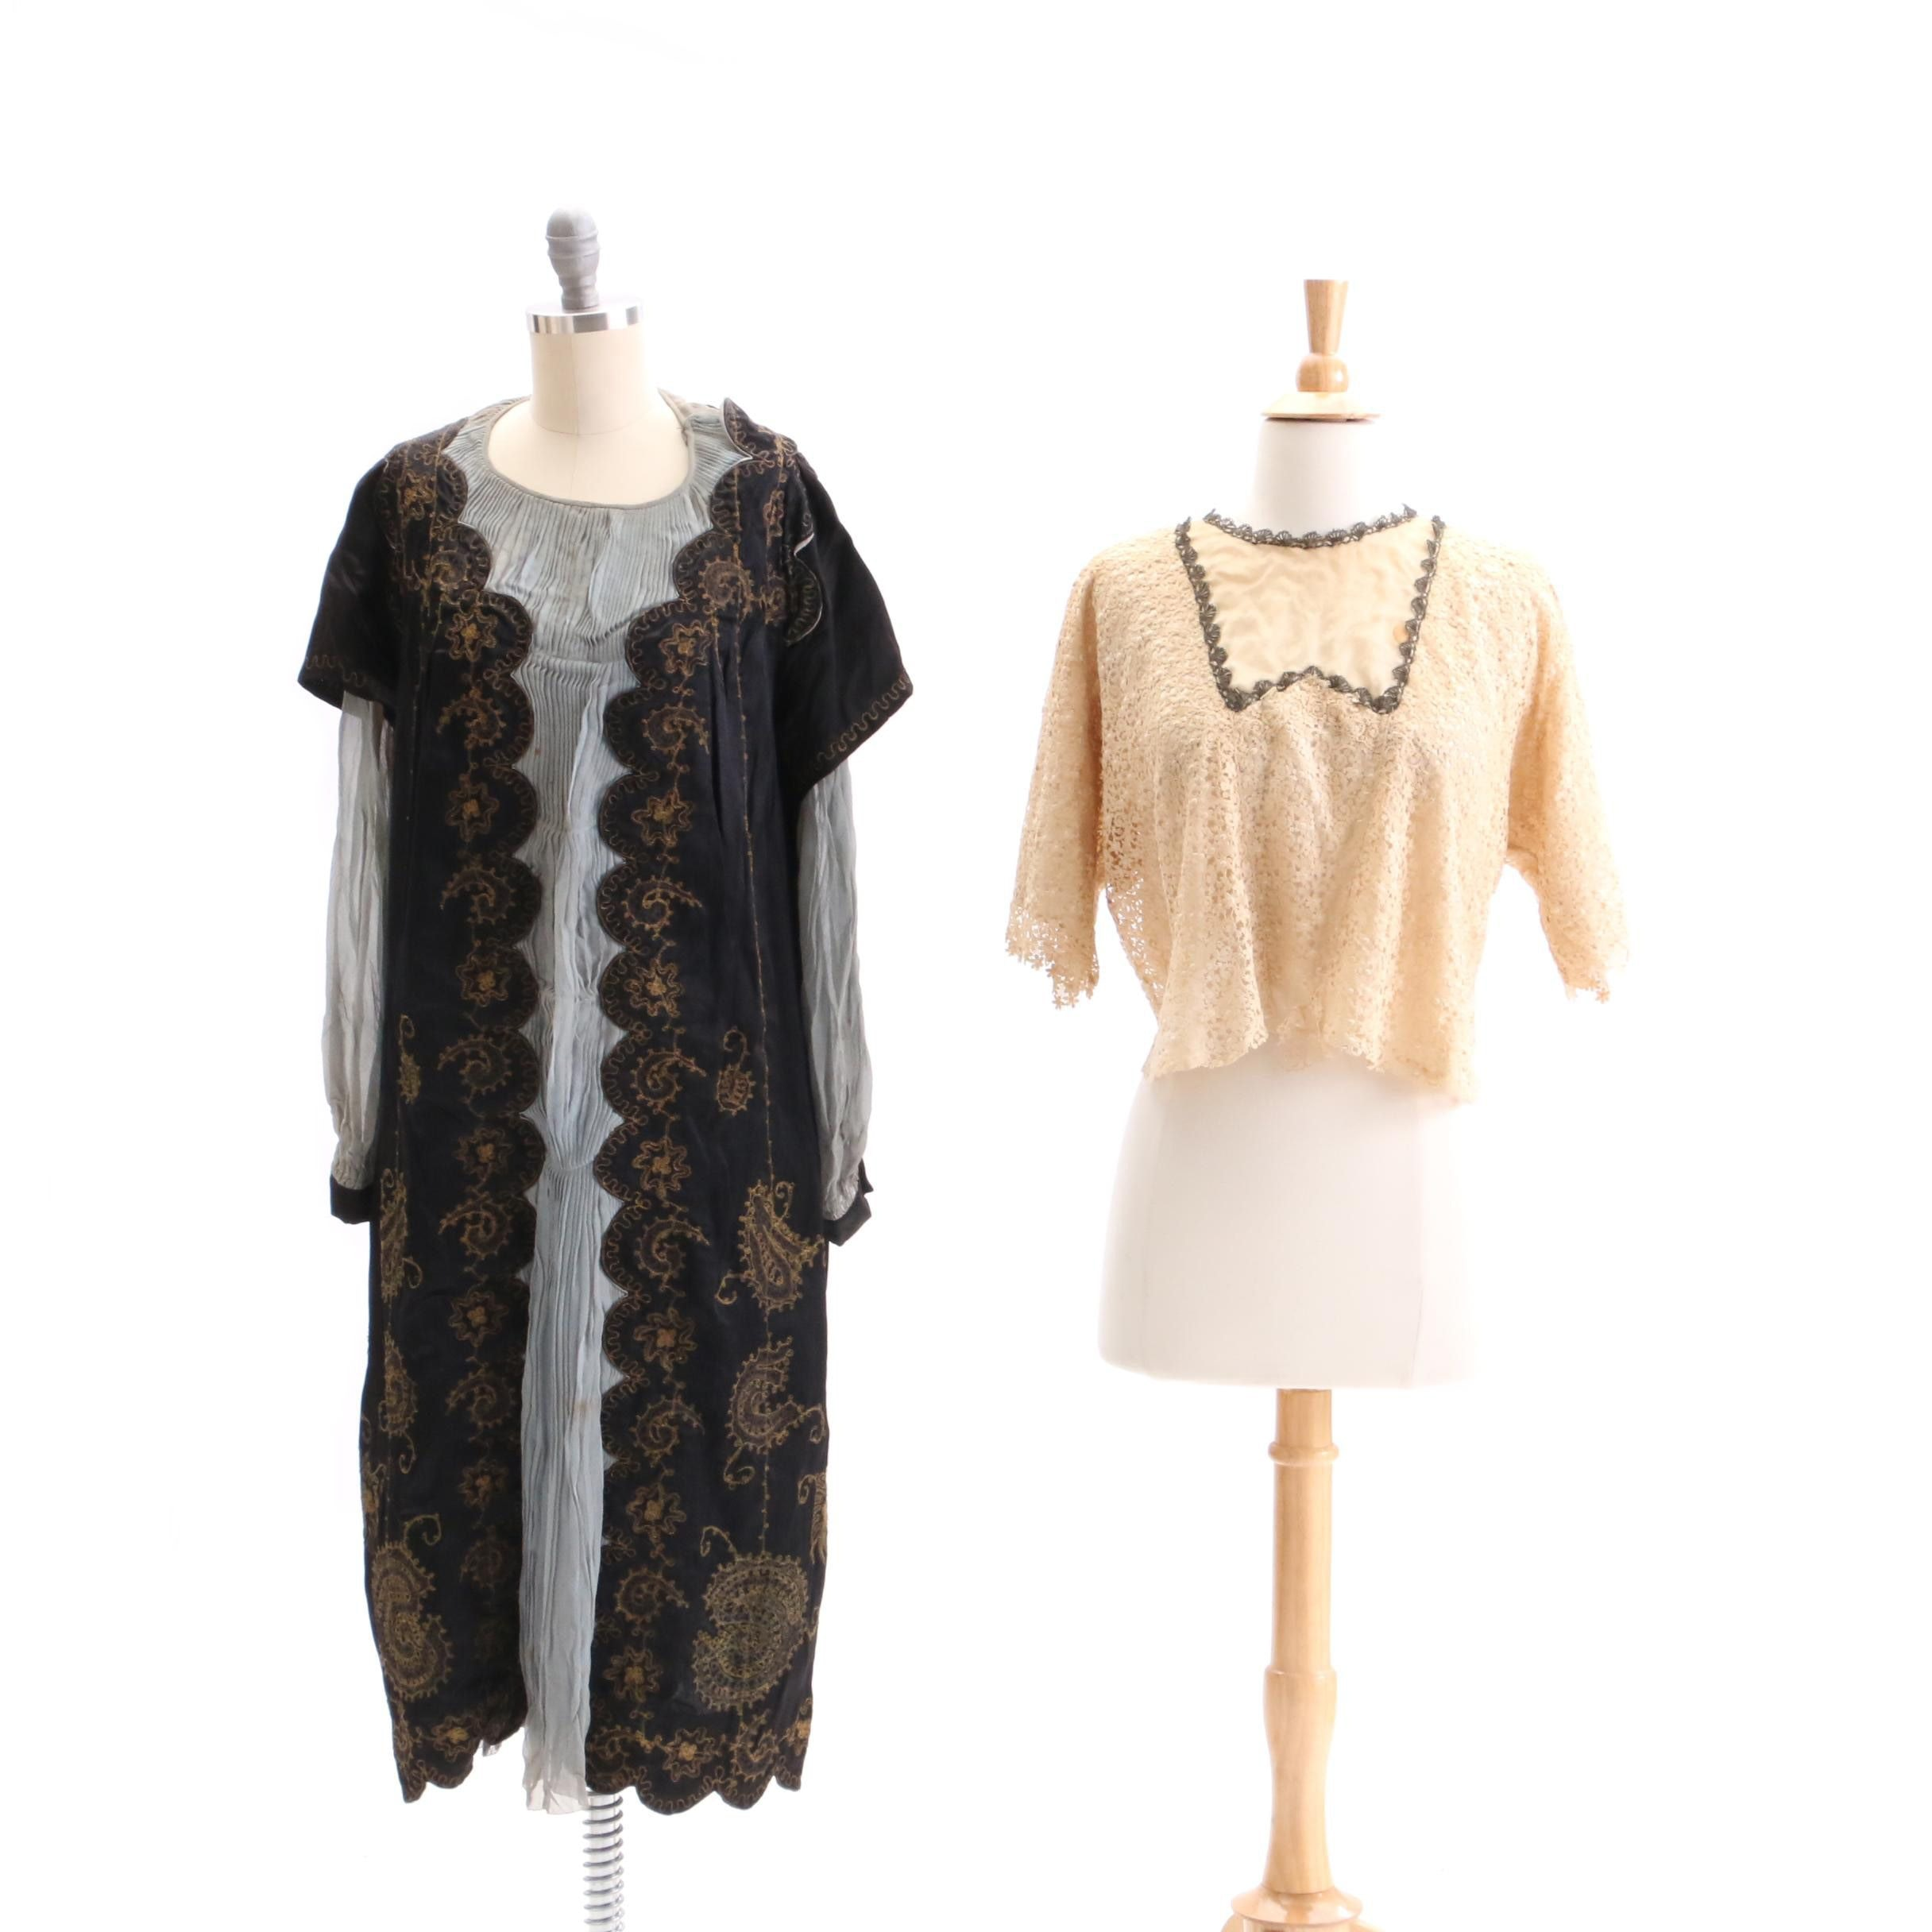 Circa 1920s Vintage Bullion Embroidered Silk Dress and Lace Blouse